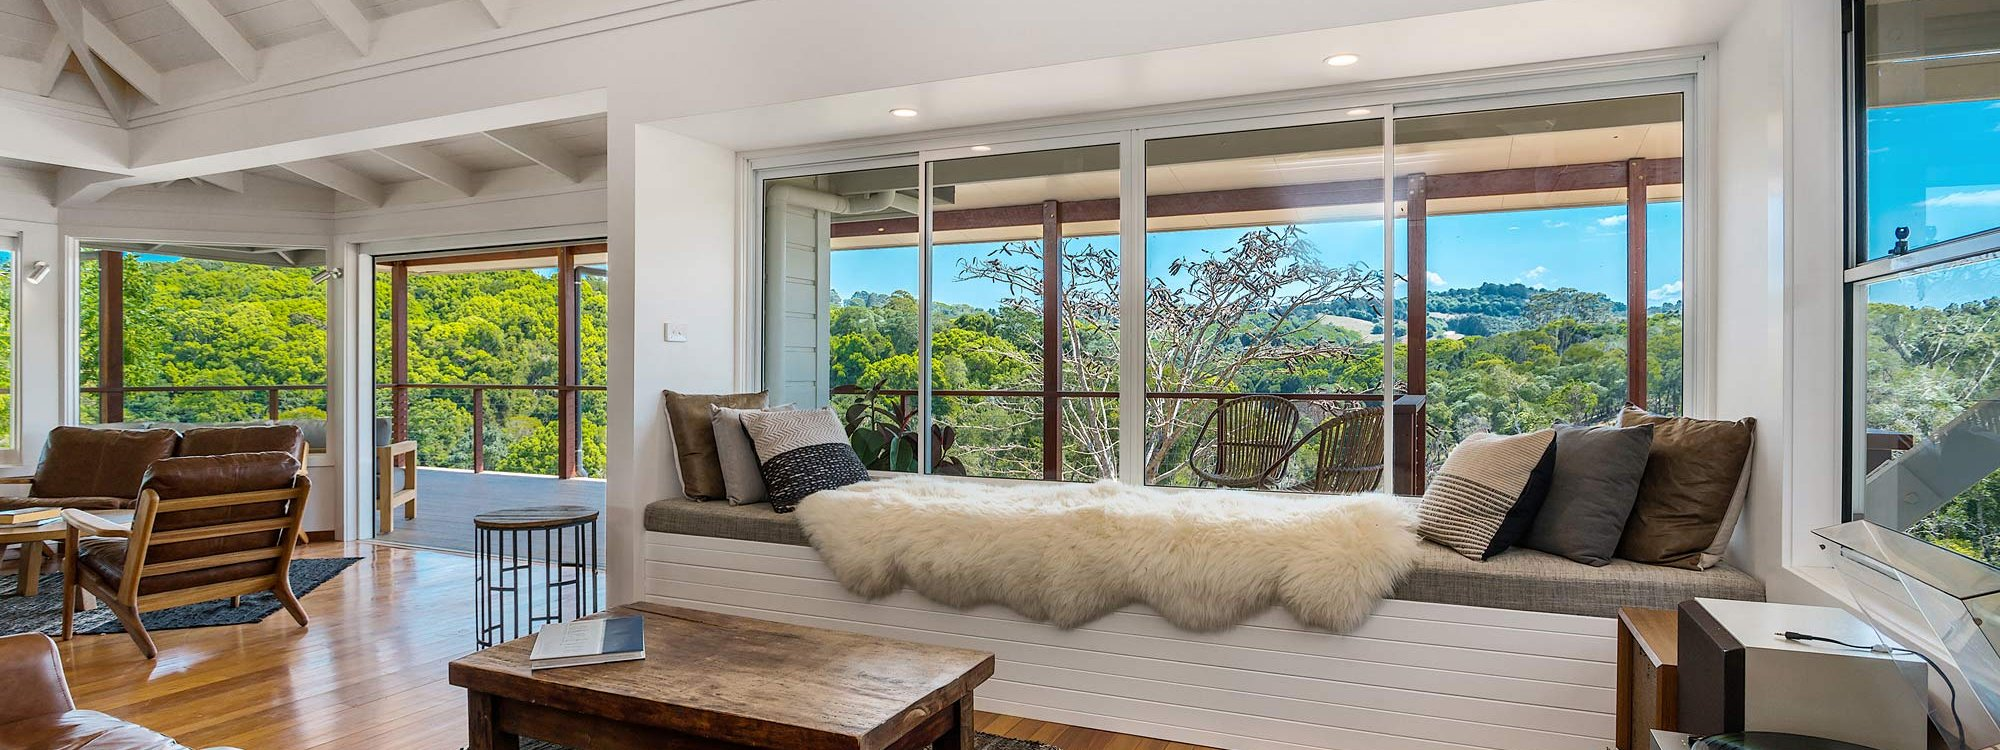 Rockinghorse House - Byron Hinterland - Lounge and window seat